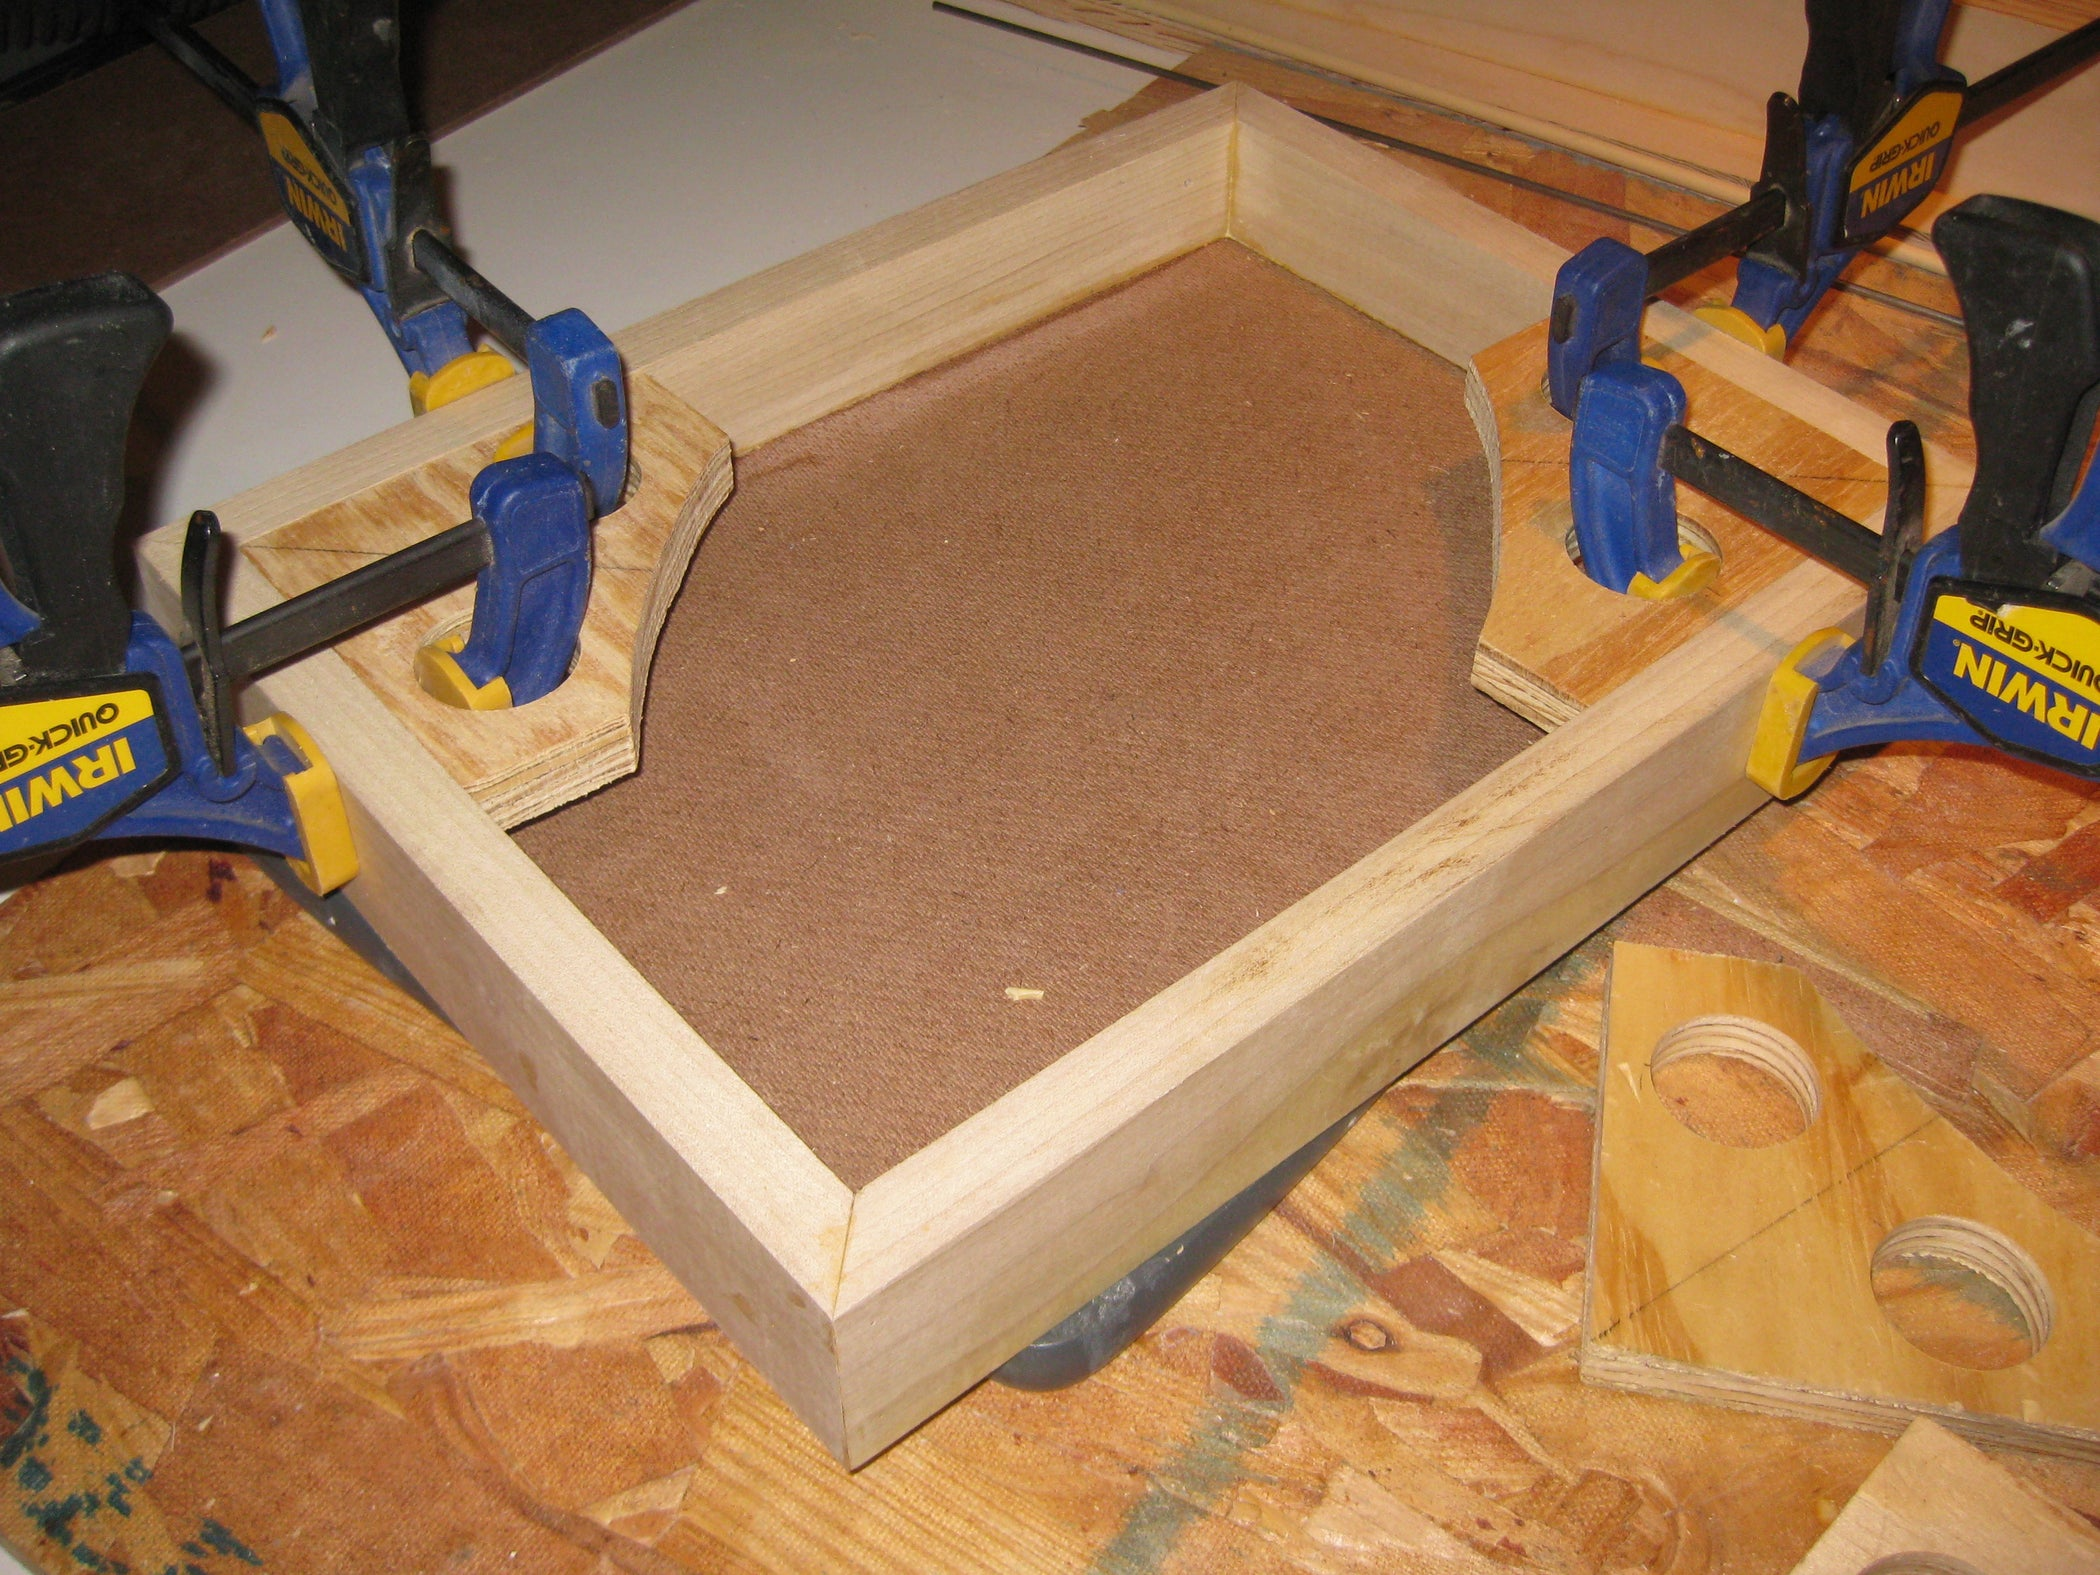 The Clamping Squares